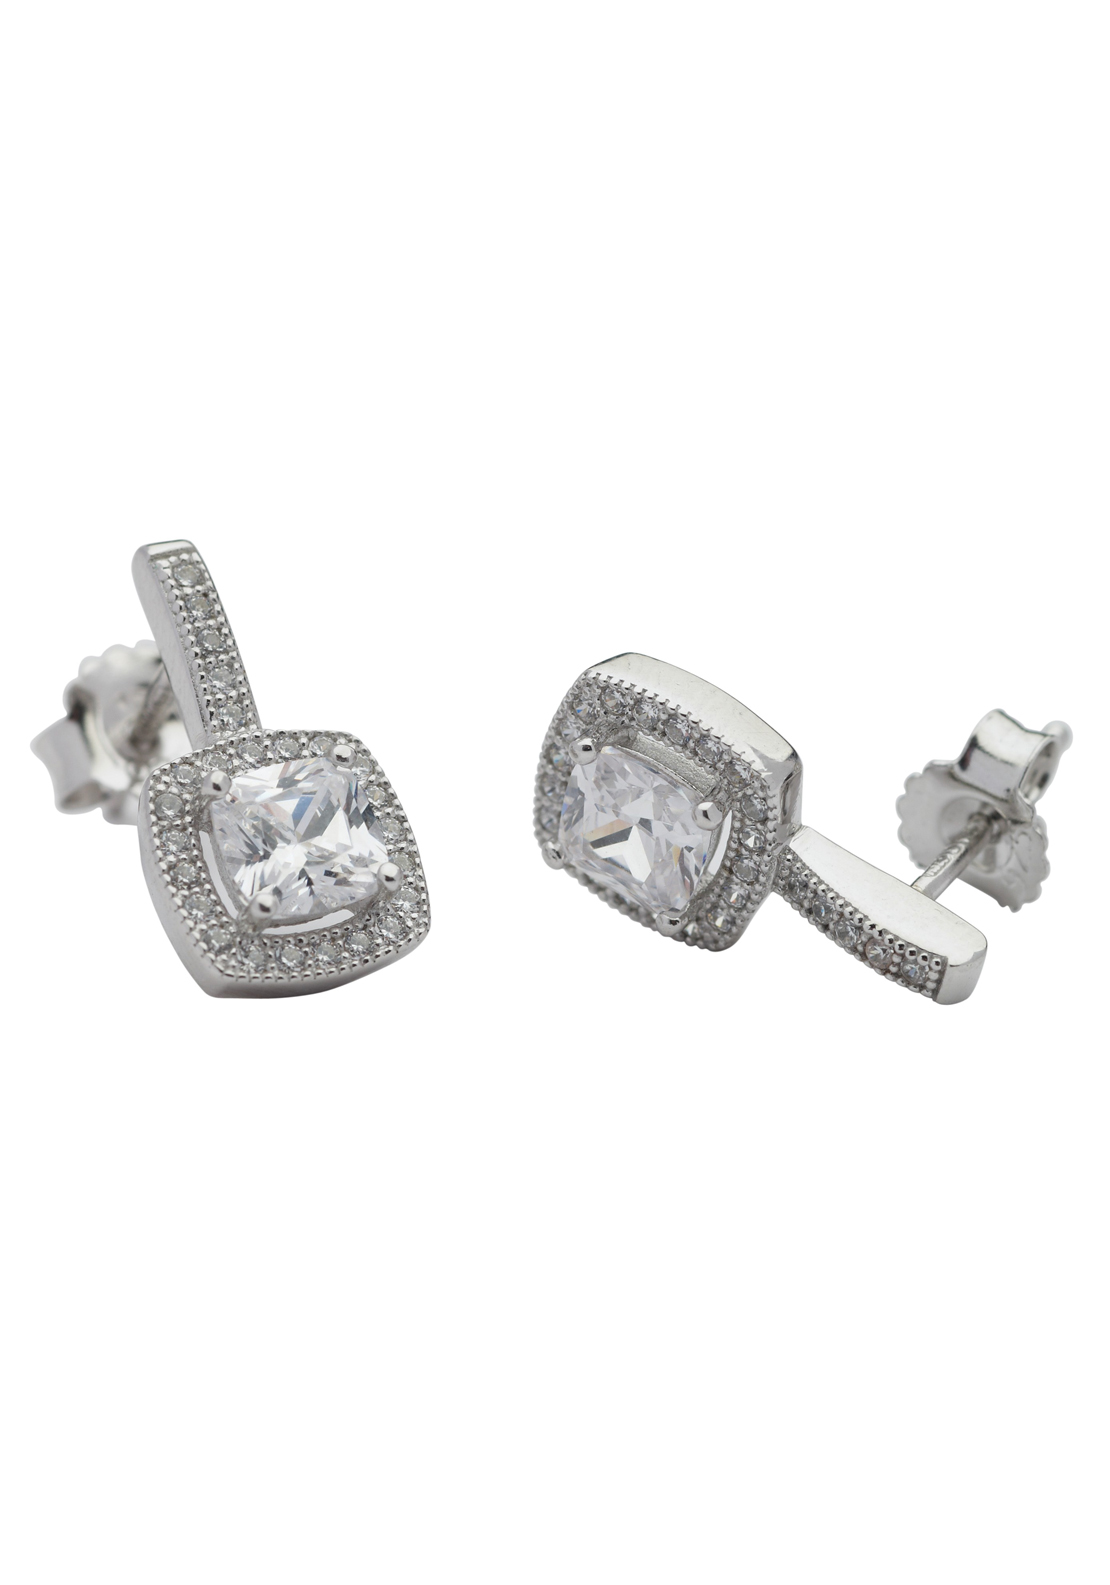 Killarney Crystal Finesse Large Square Earrings